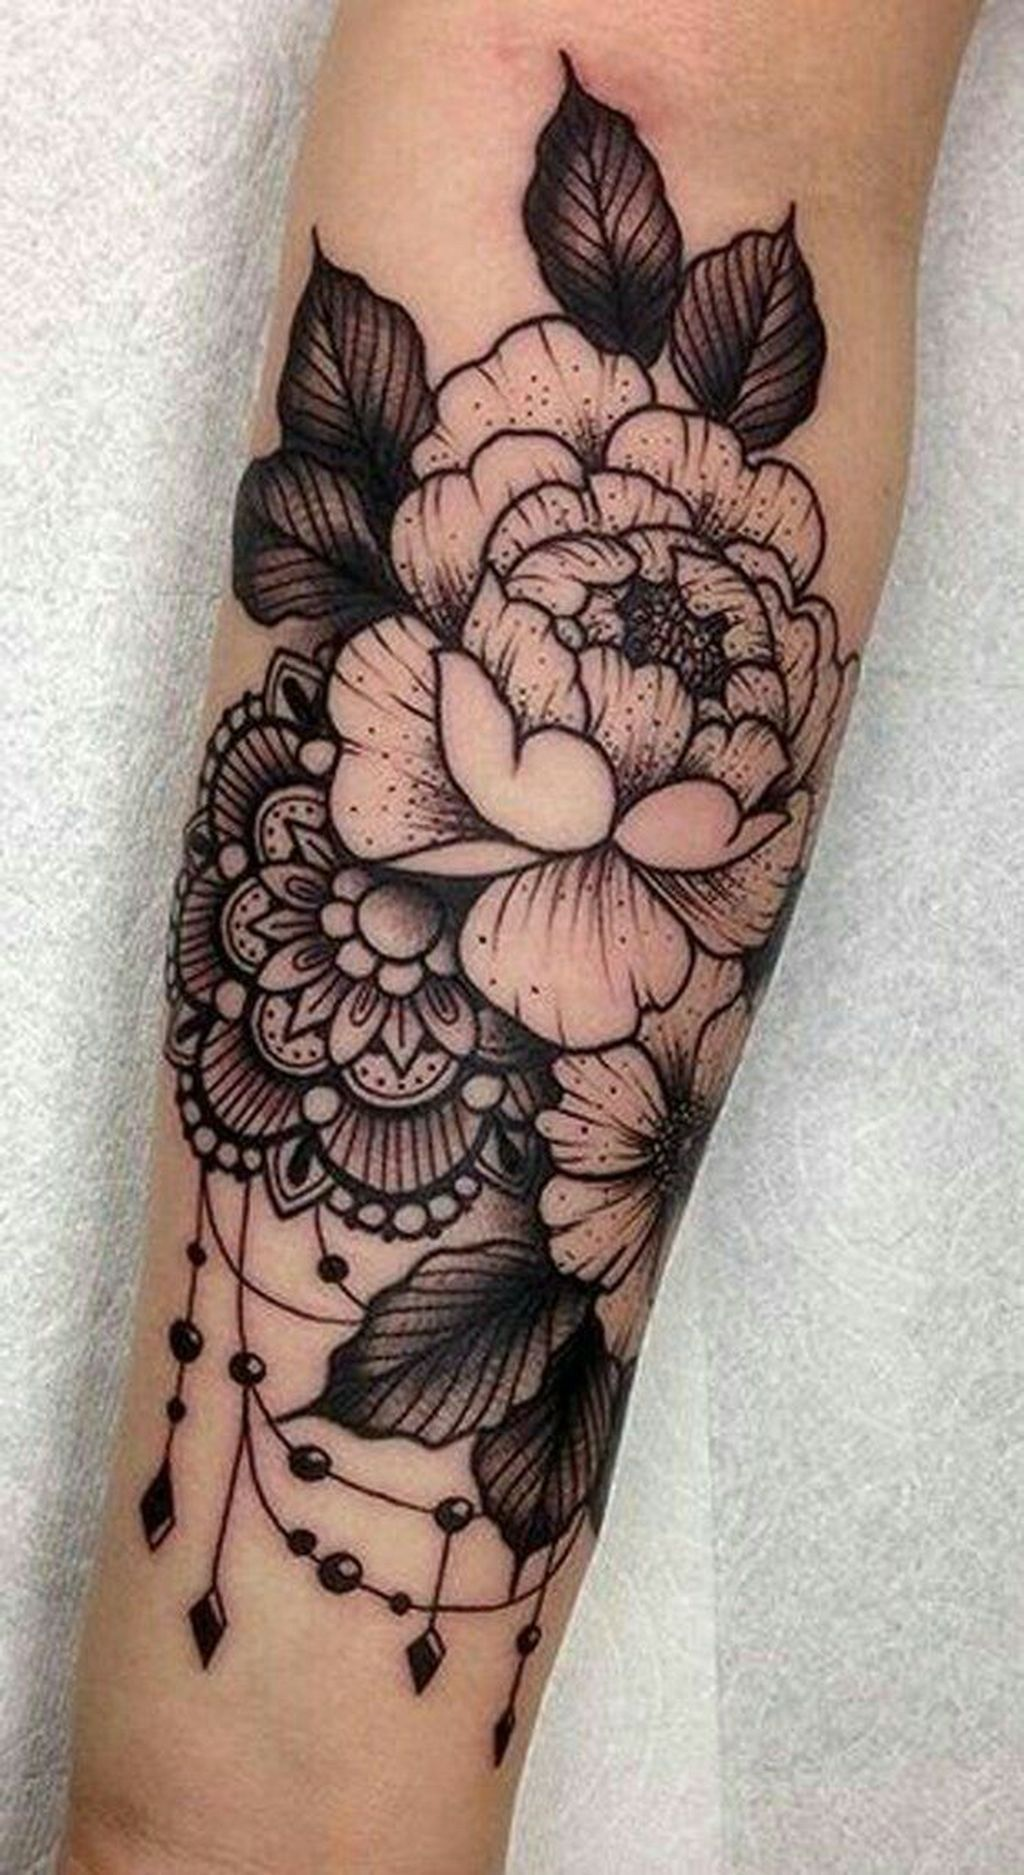 Cute henna lace arm tattoo ideas you should try